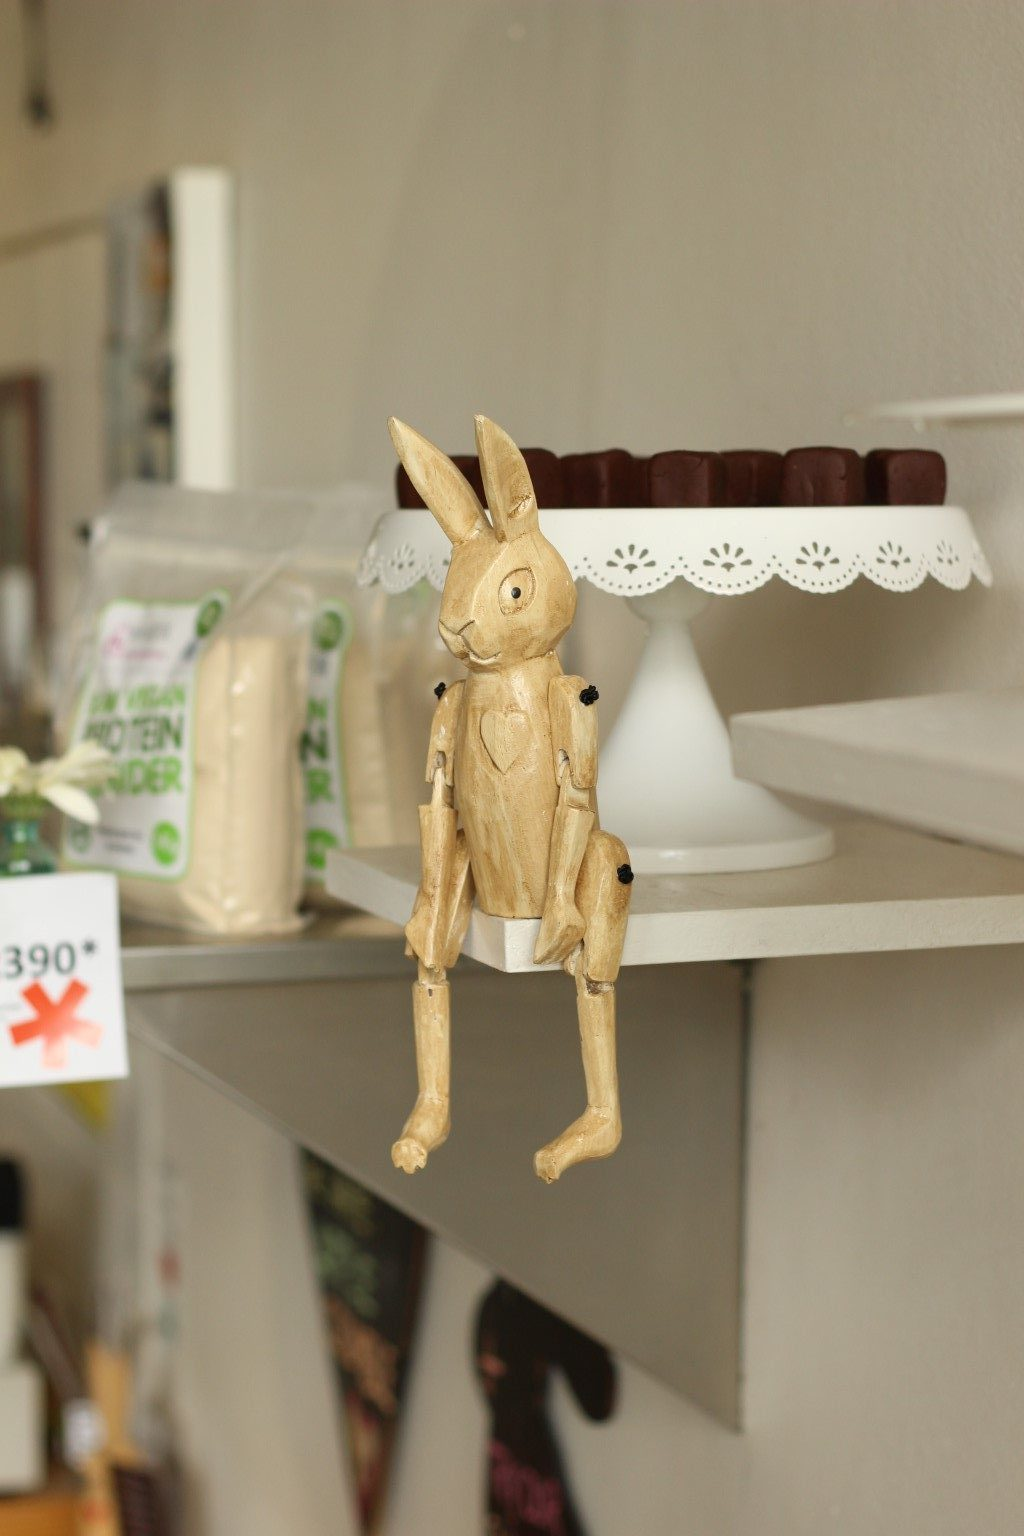 Wooden rabbits decorate the store, this one is guarding some chocolate dice